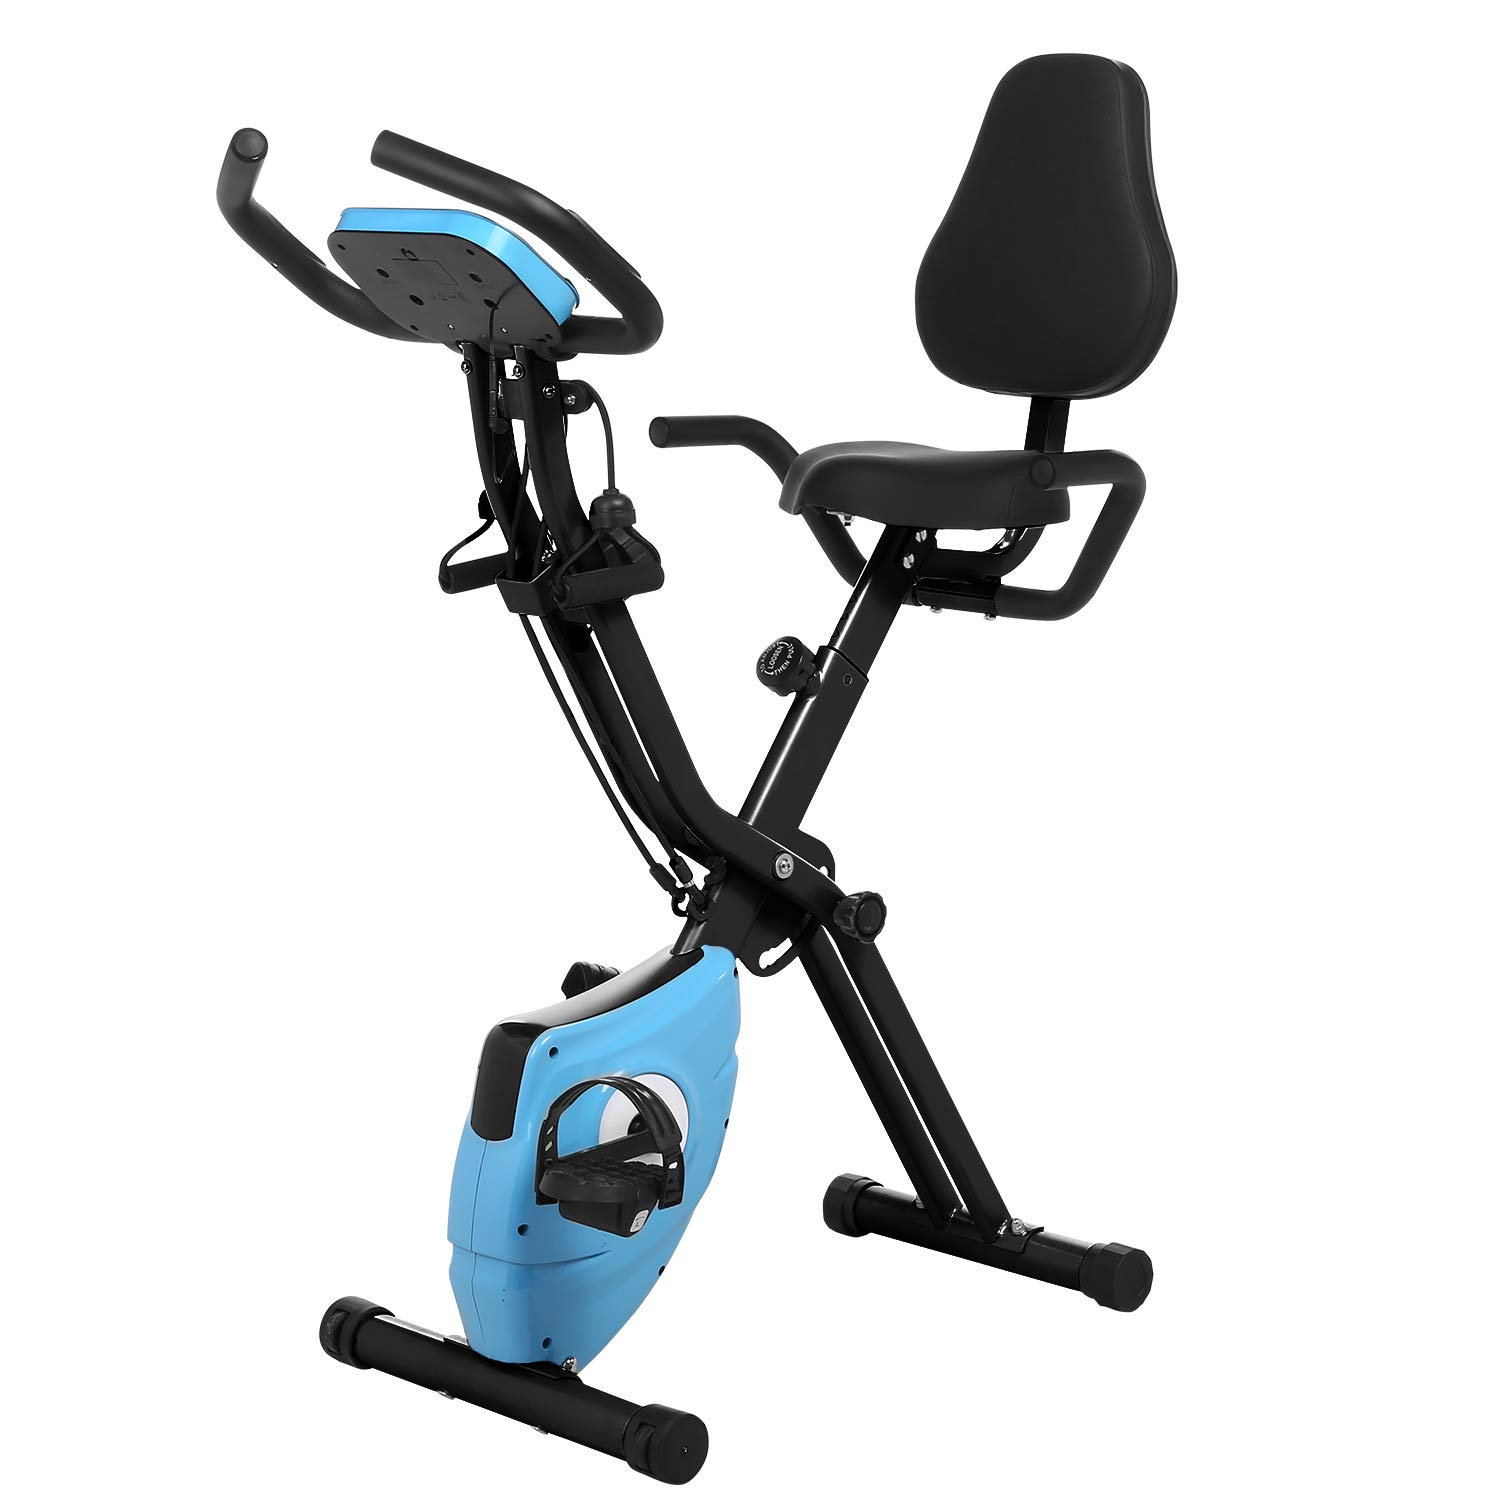 ANCHEER 2 in1 Folding Exercise Bike, Slim Cycle Indoor Stationary Bike with 10-Level Adjustable Magnetic Resistance and Arm Training Bands (Blue) by ANCHEER (Image #8)